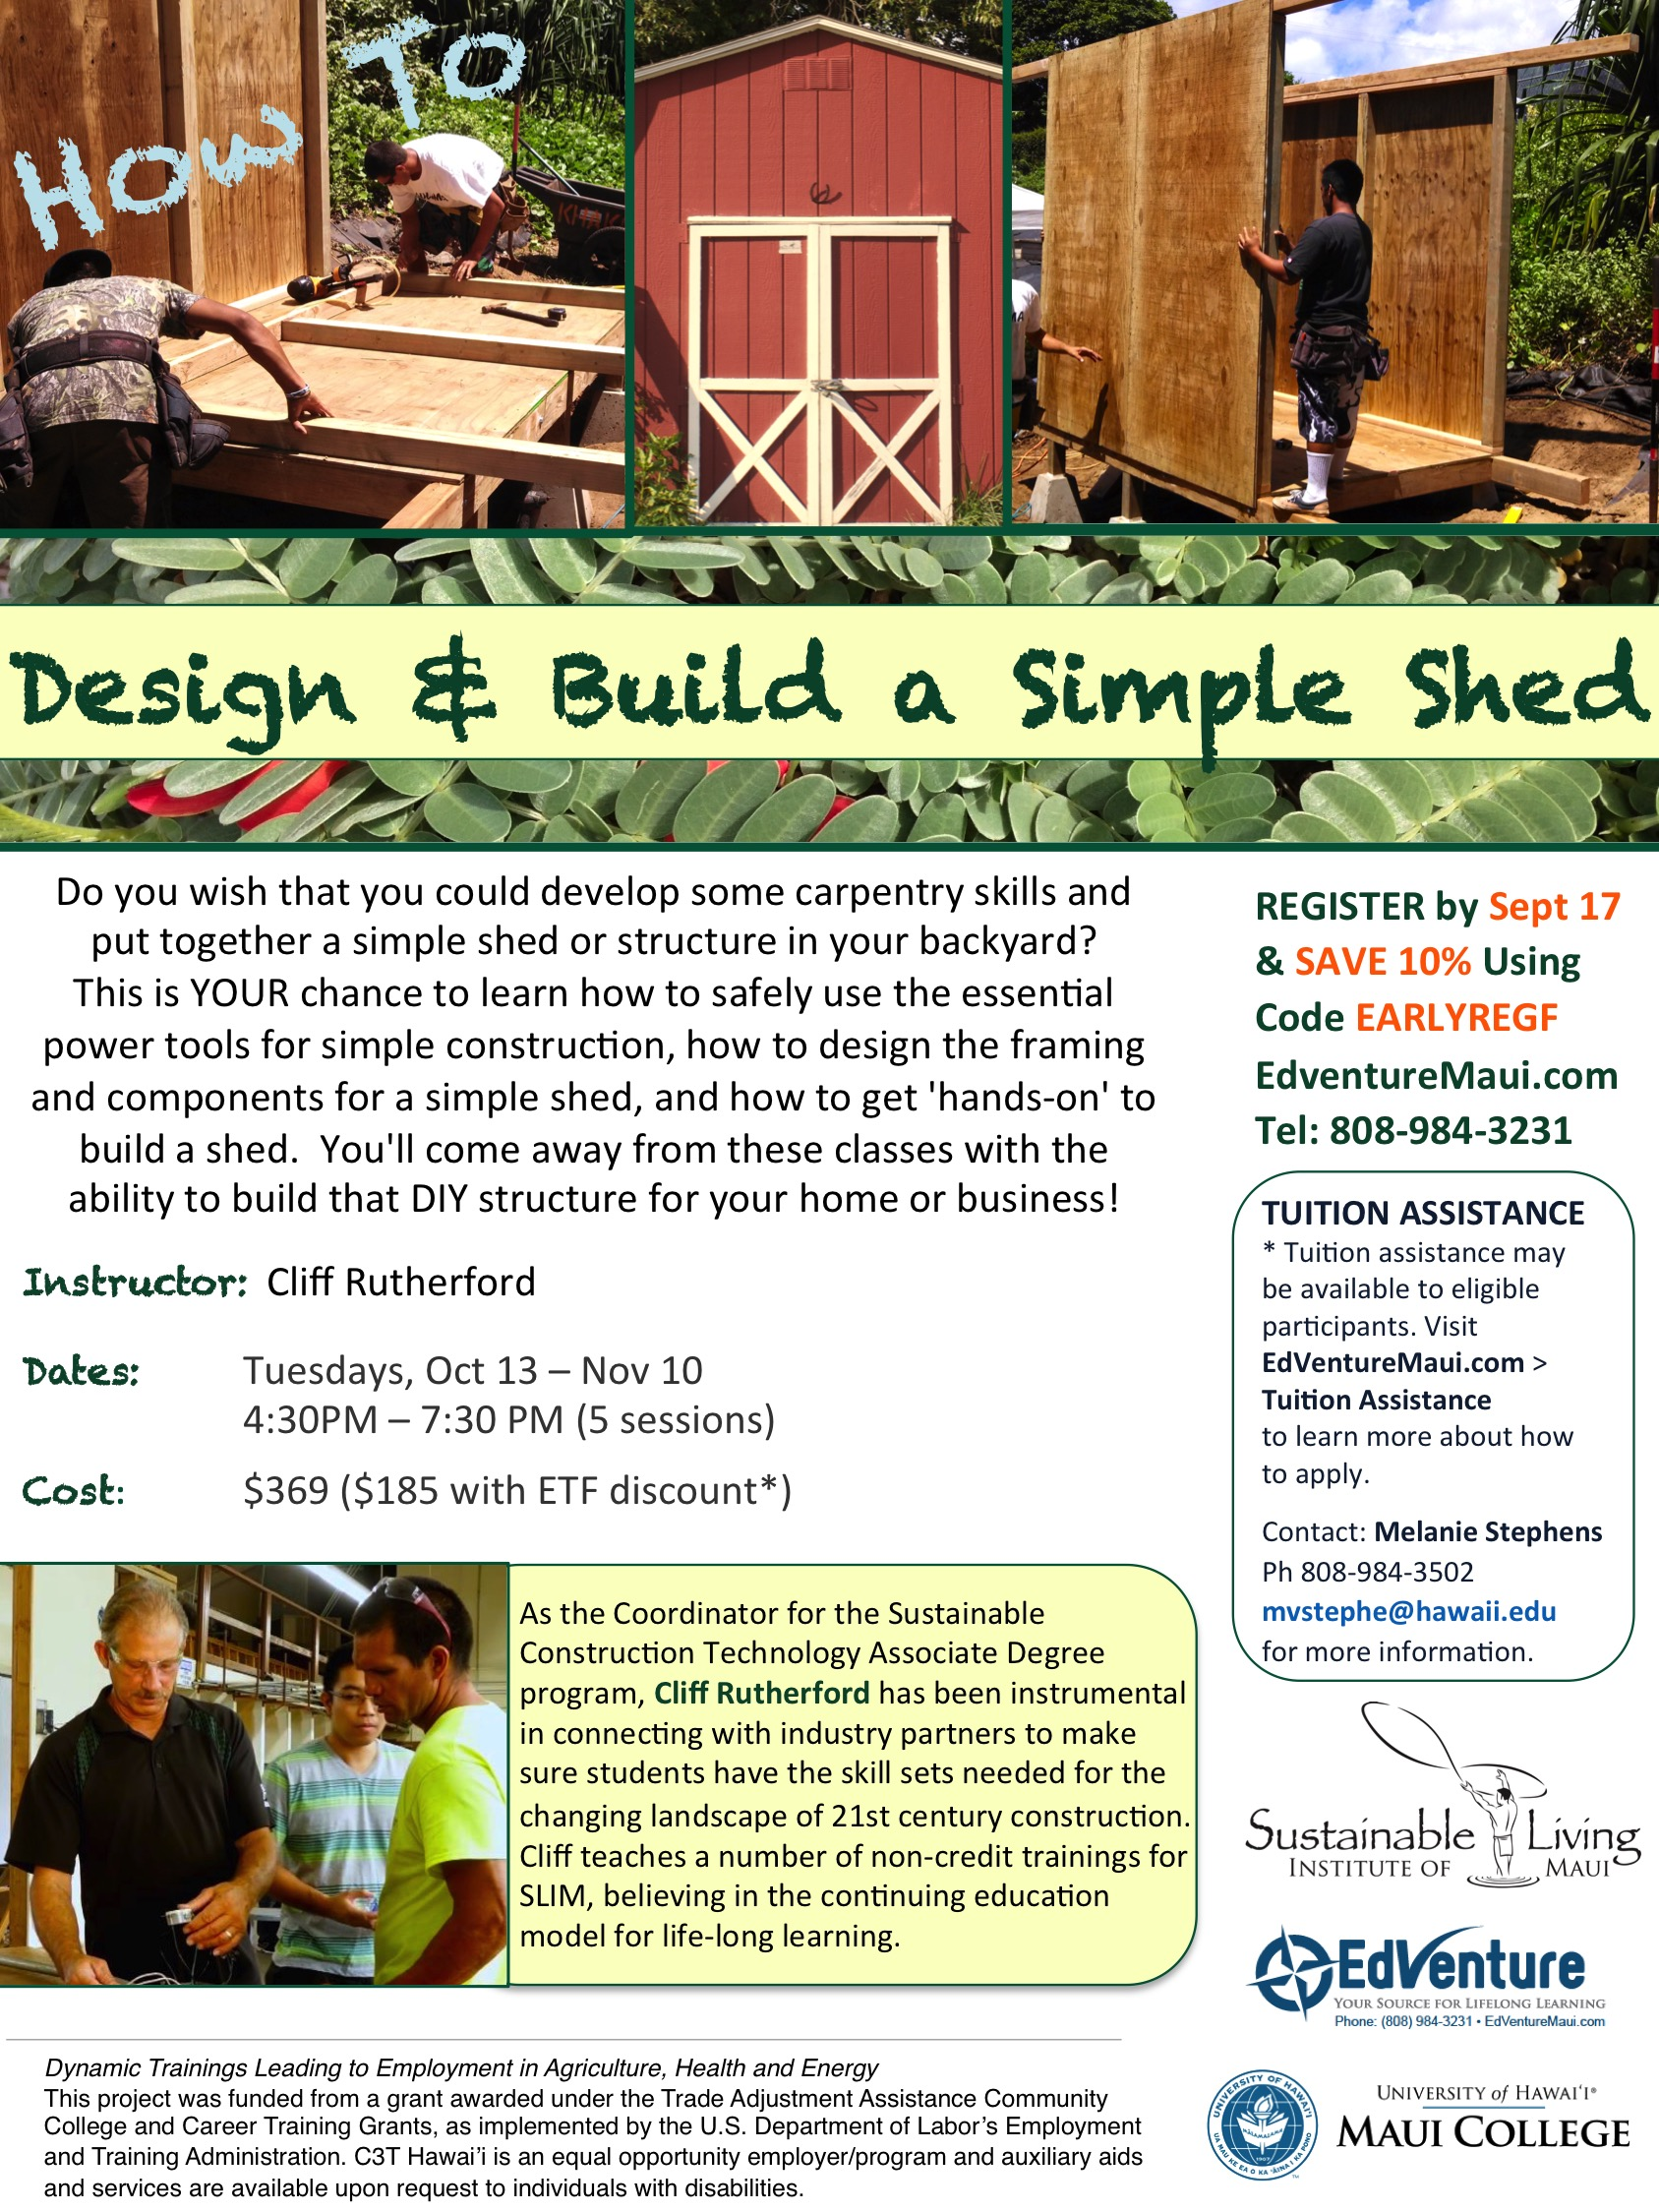 How To Design and Build a Simple Shed_FALL 2015